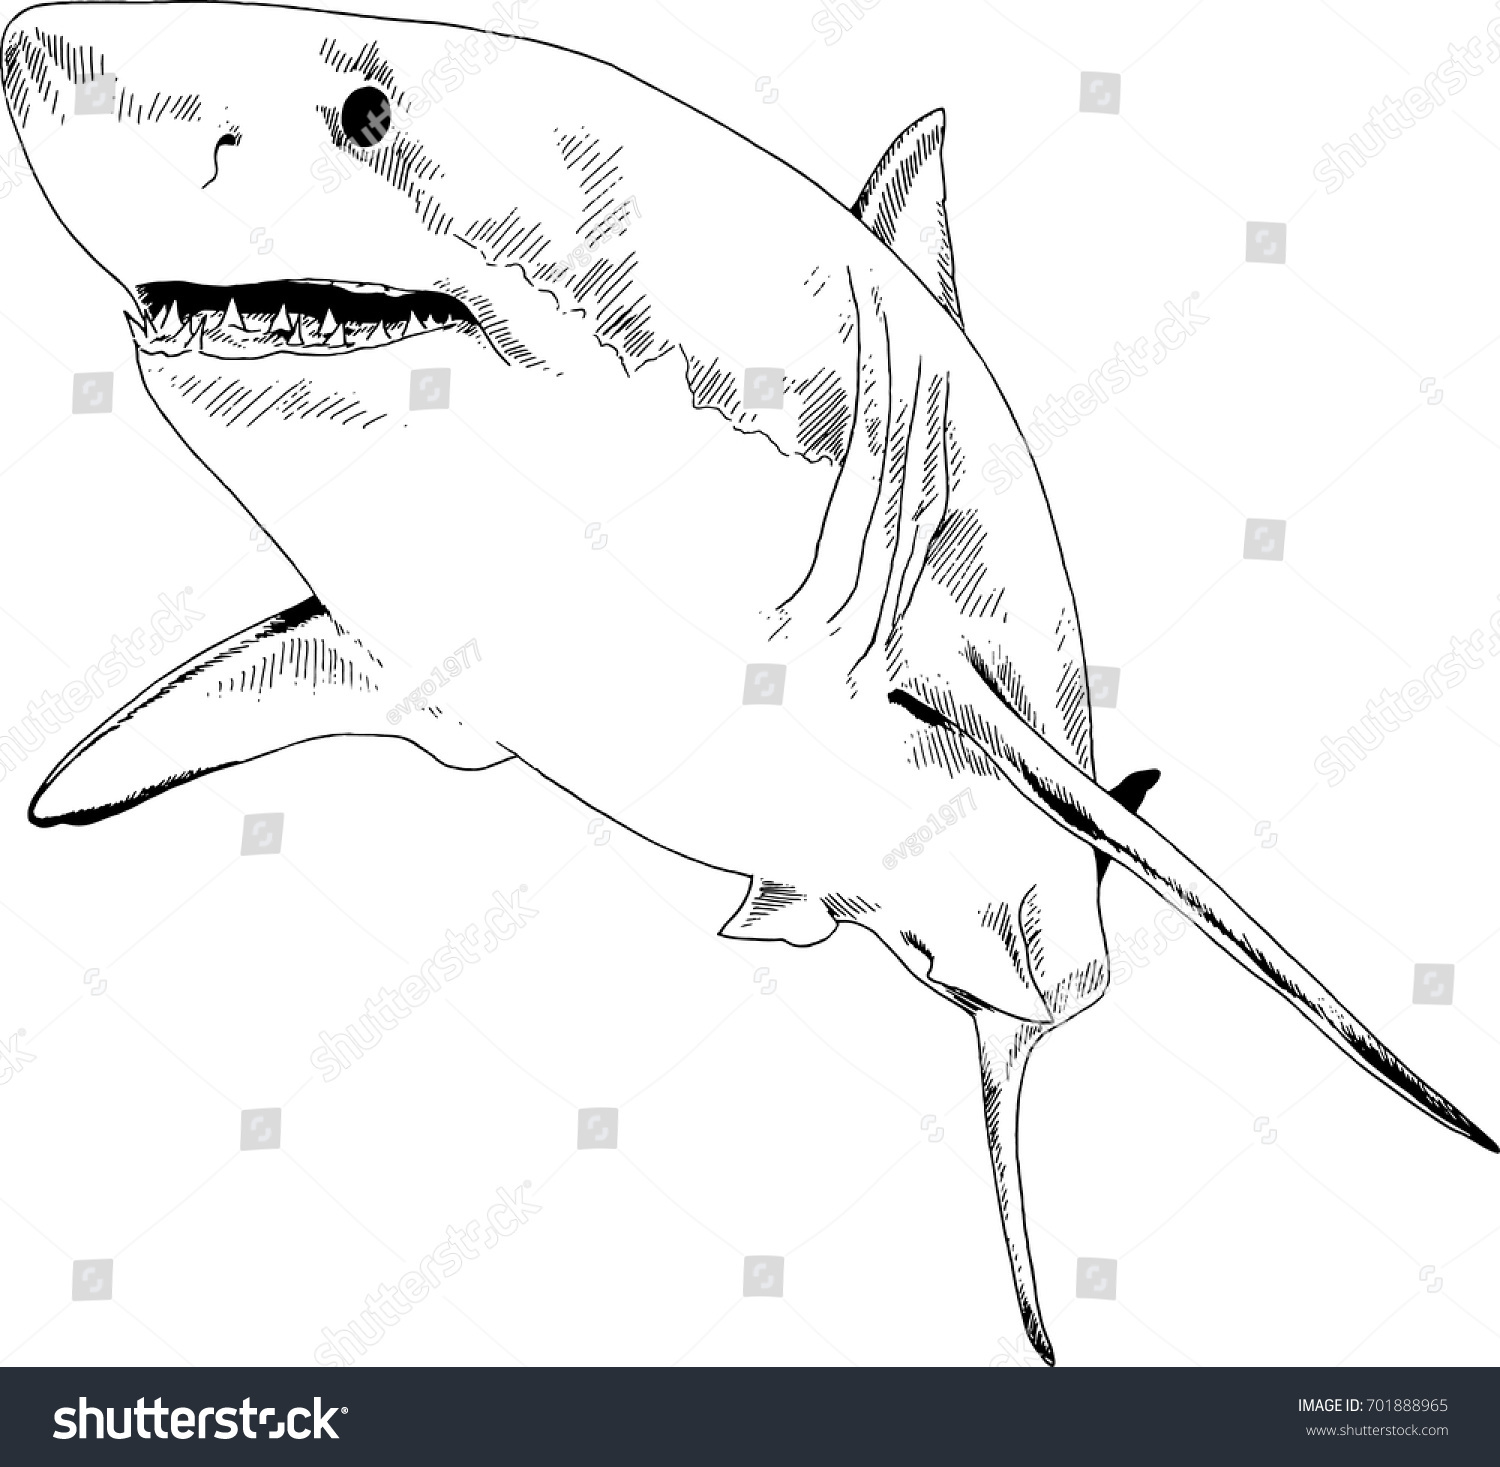 attacking great white shark snarling mouth stock vector 701888965